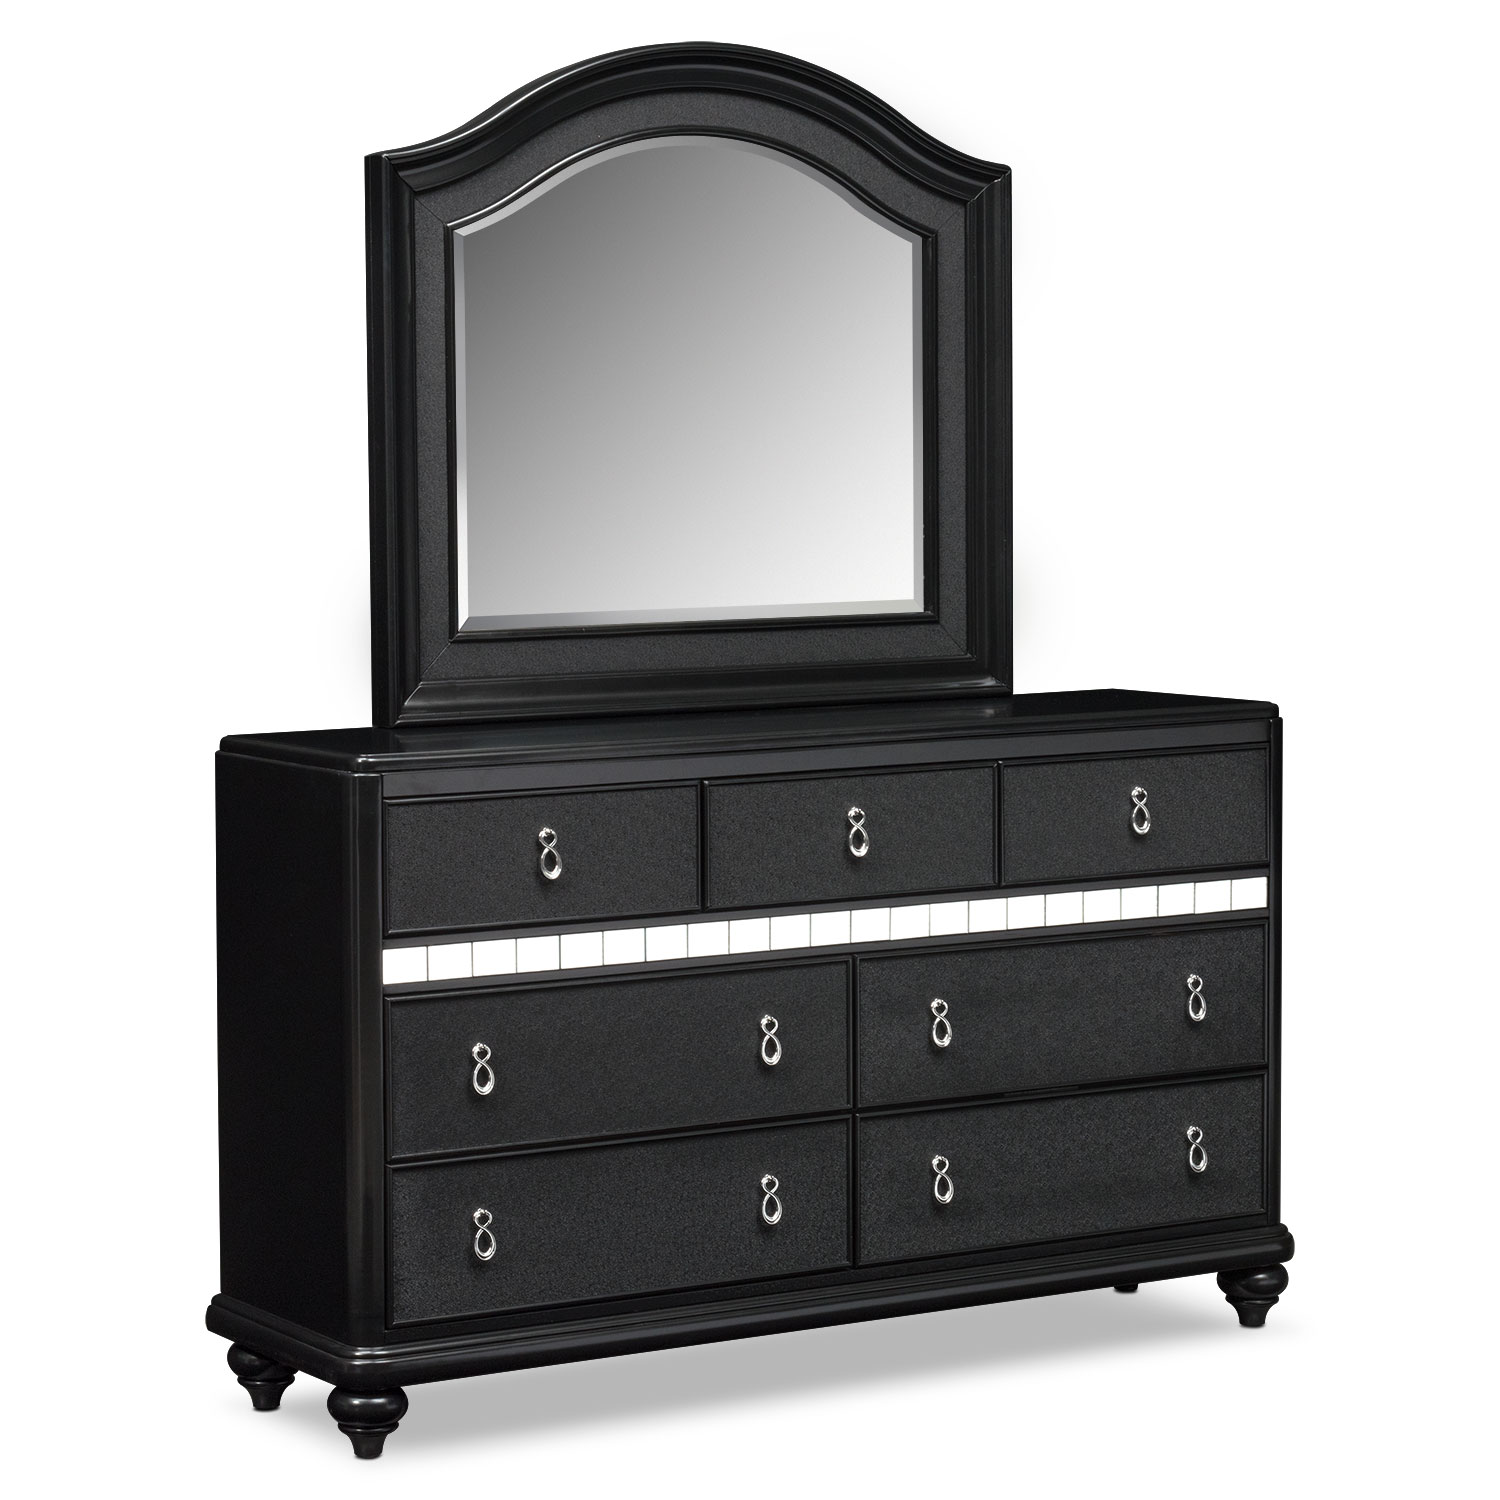 Serena Dresser and Mirror - Onyx